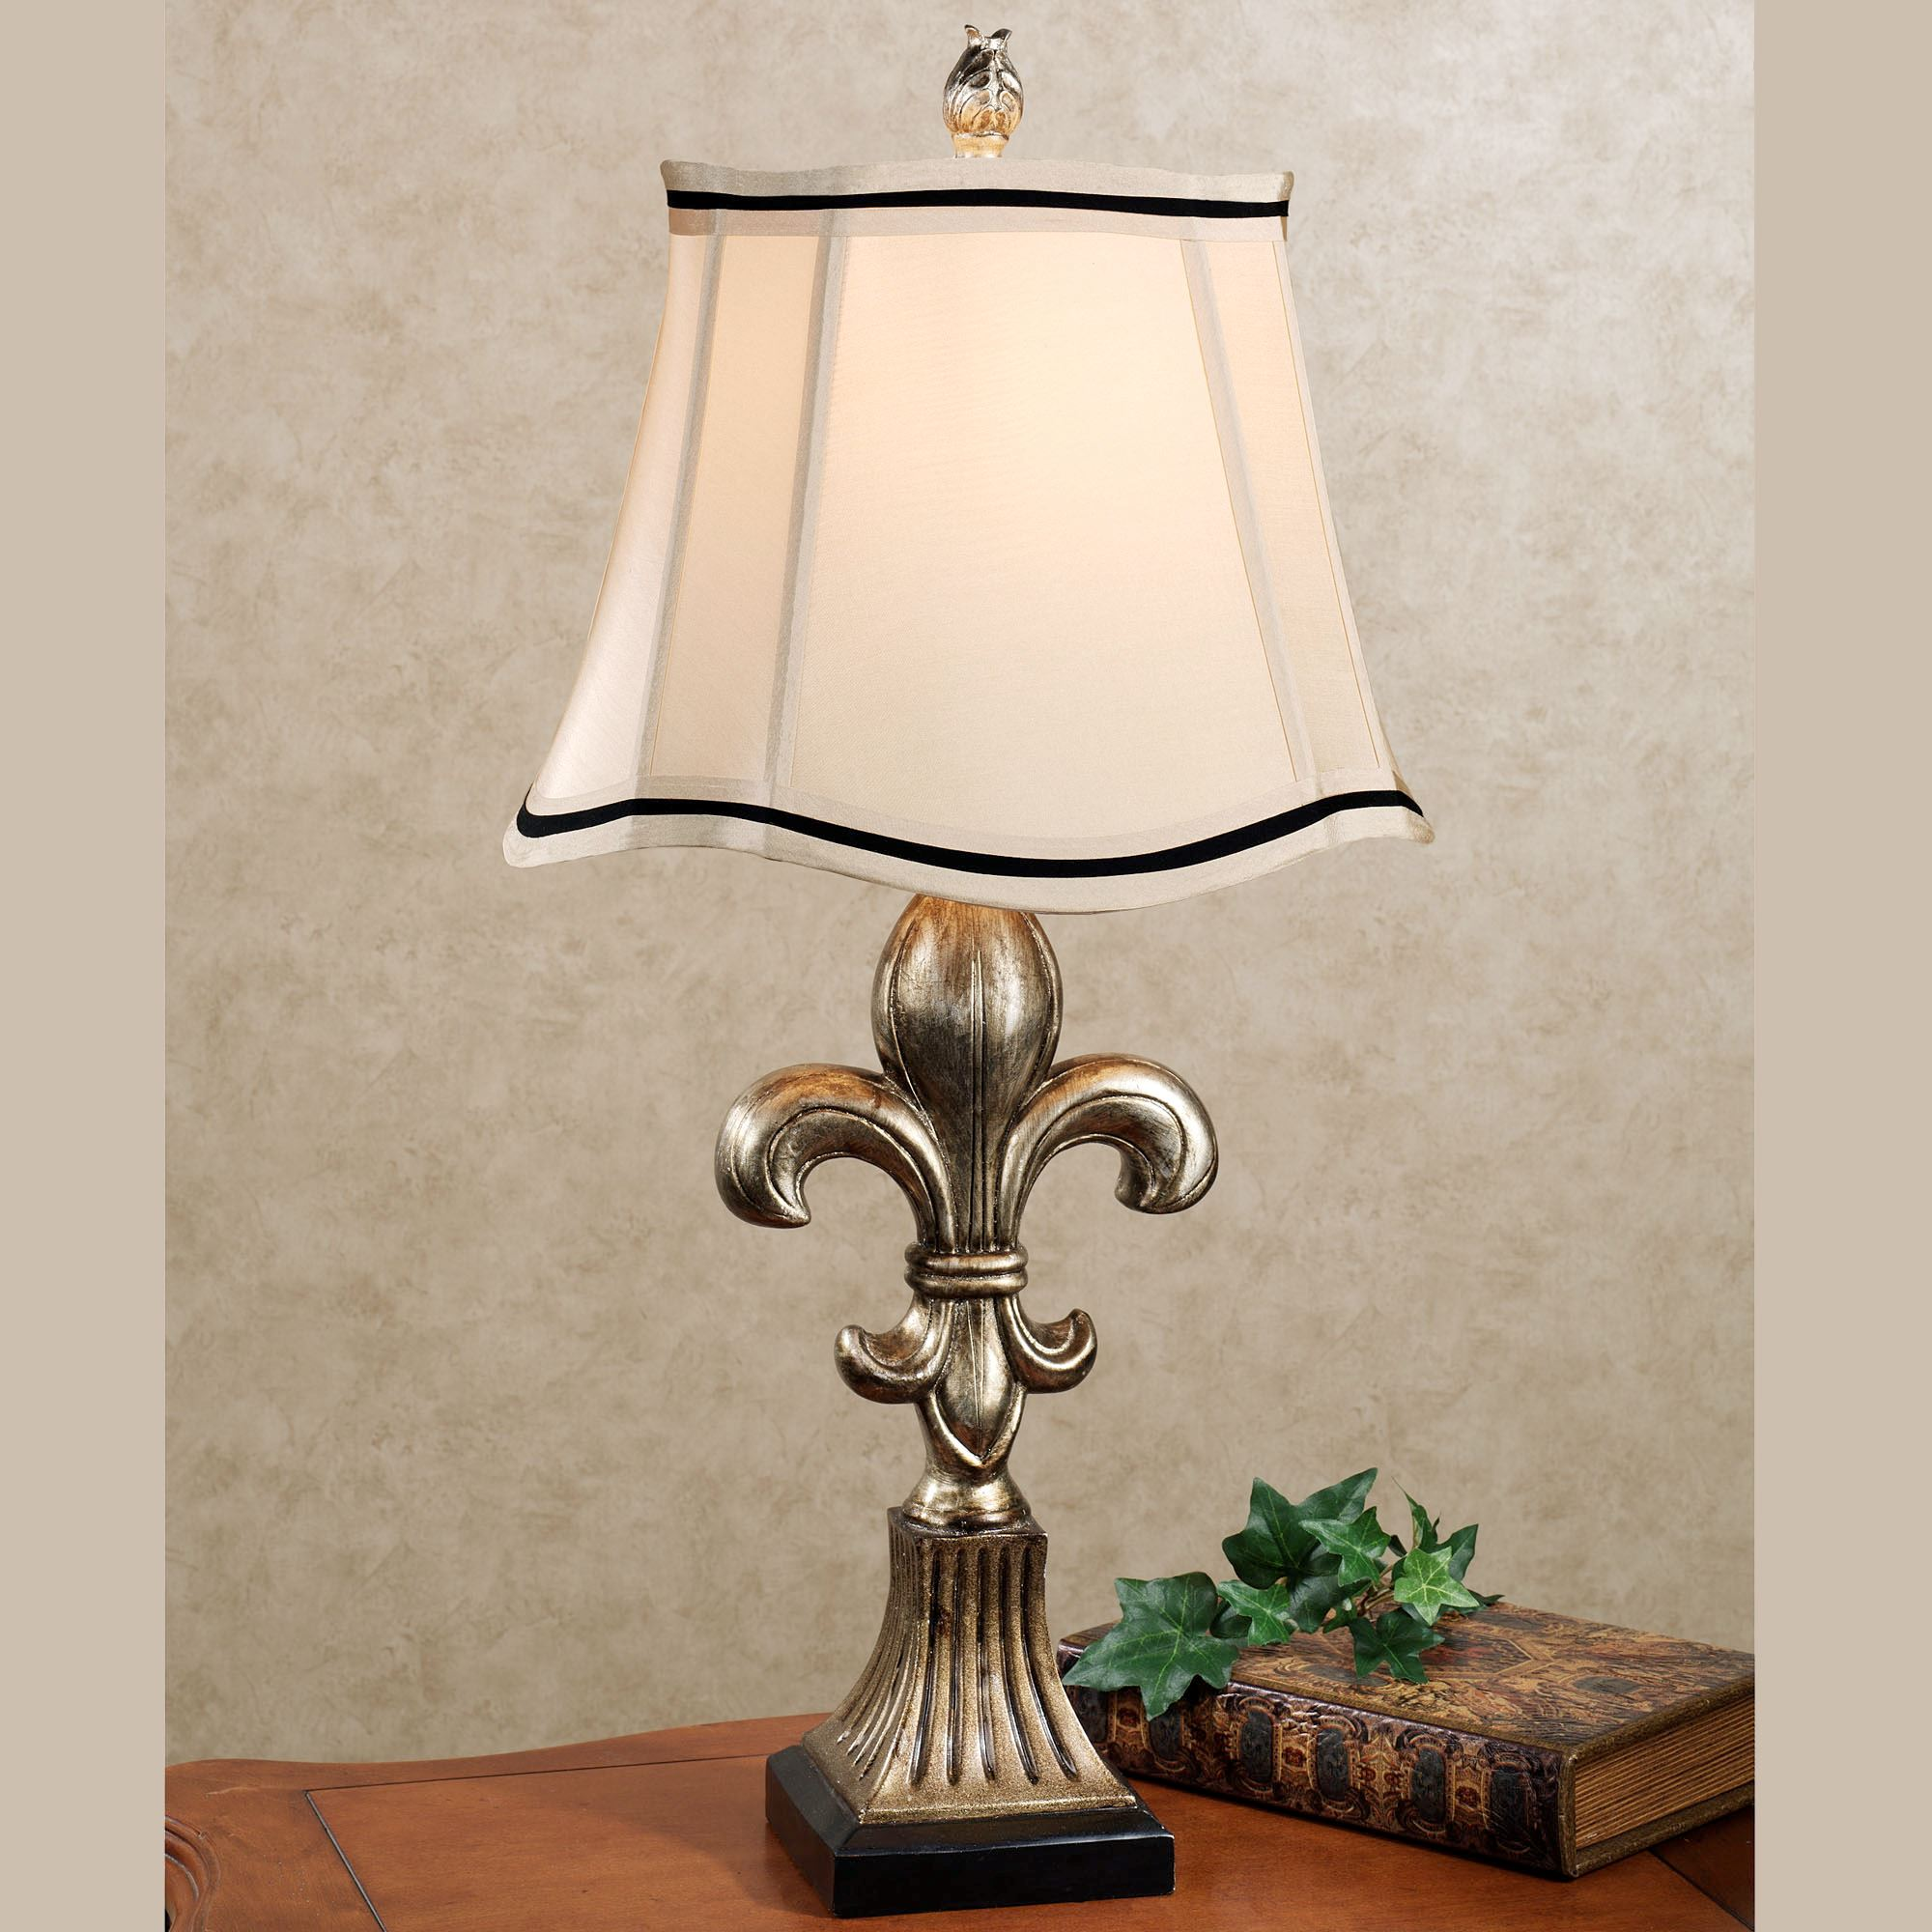 Carsten fleur table lamp carsten table lamp touch to zoom aloadofball Images